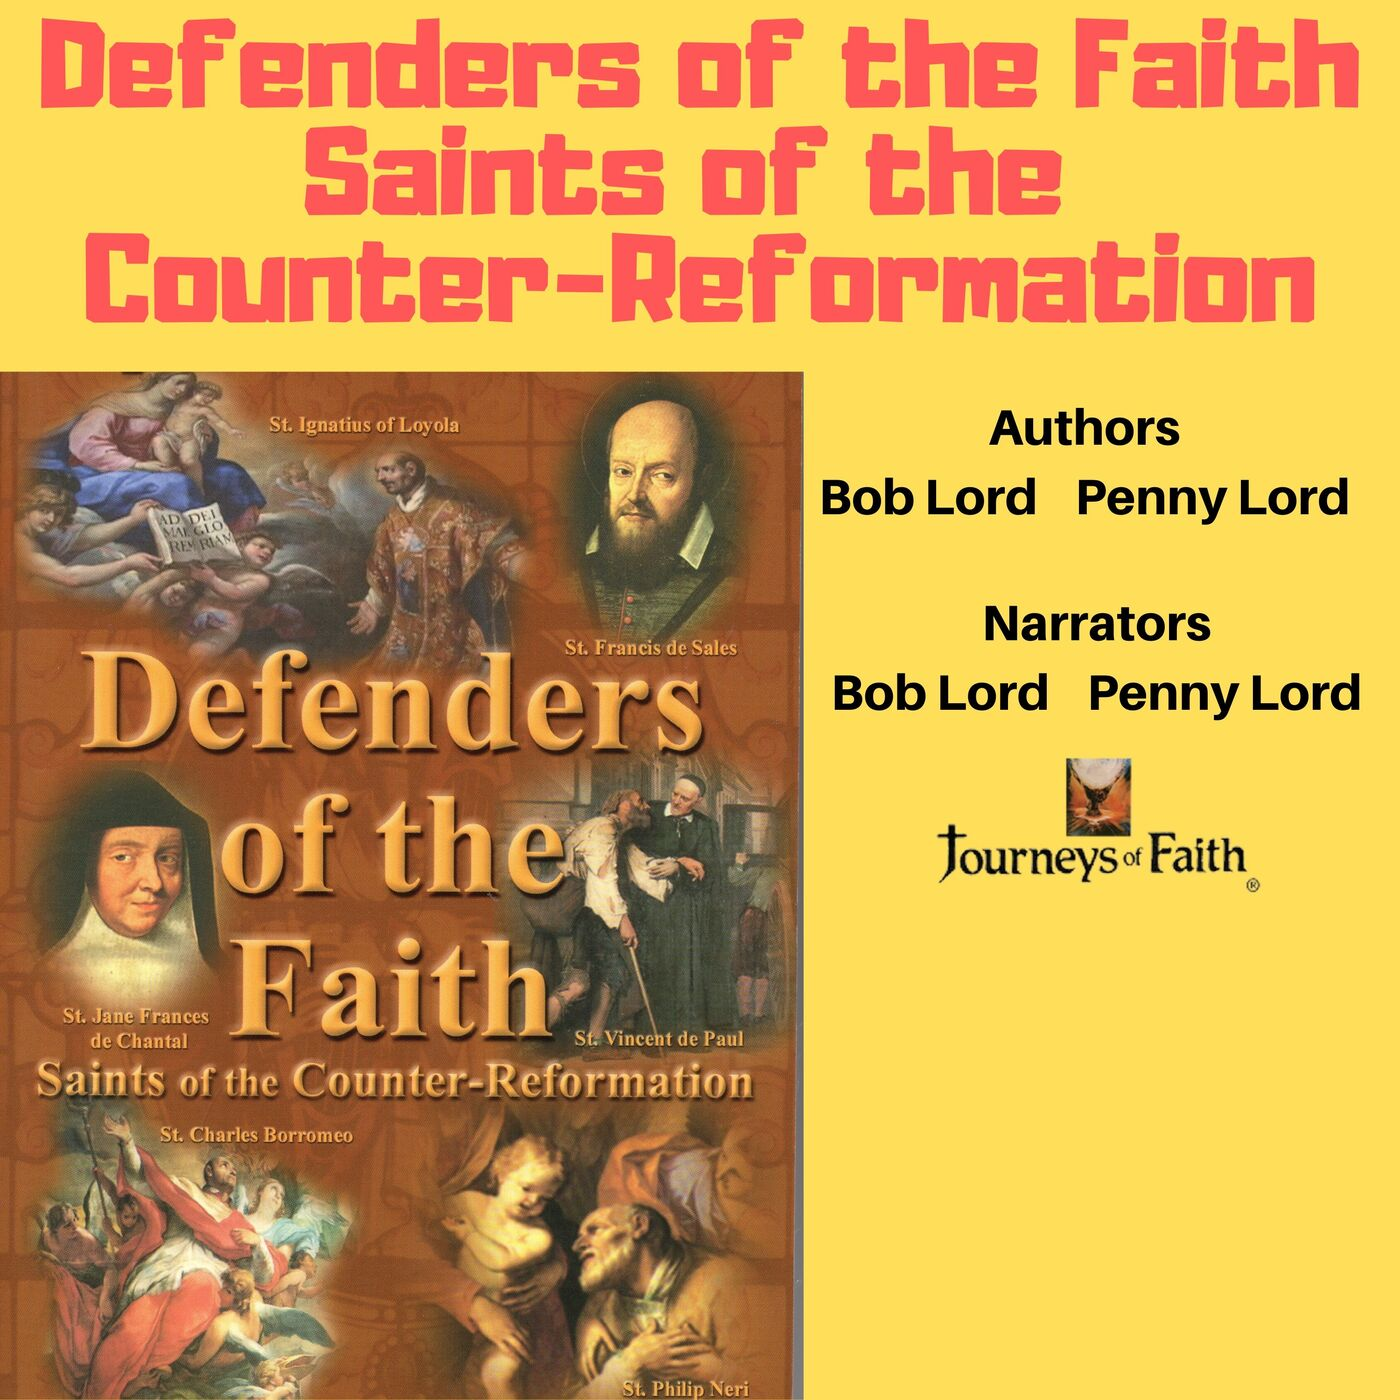 The Saints are the Defenders of the Faith